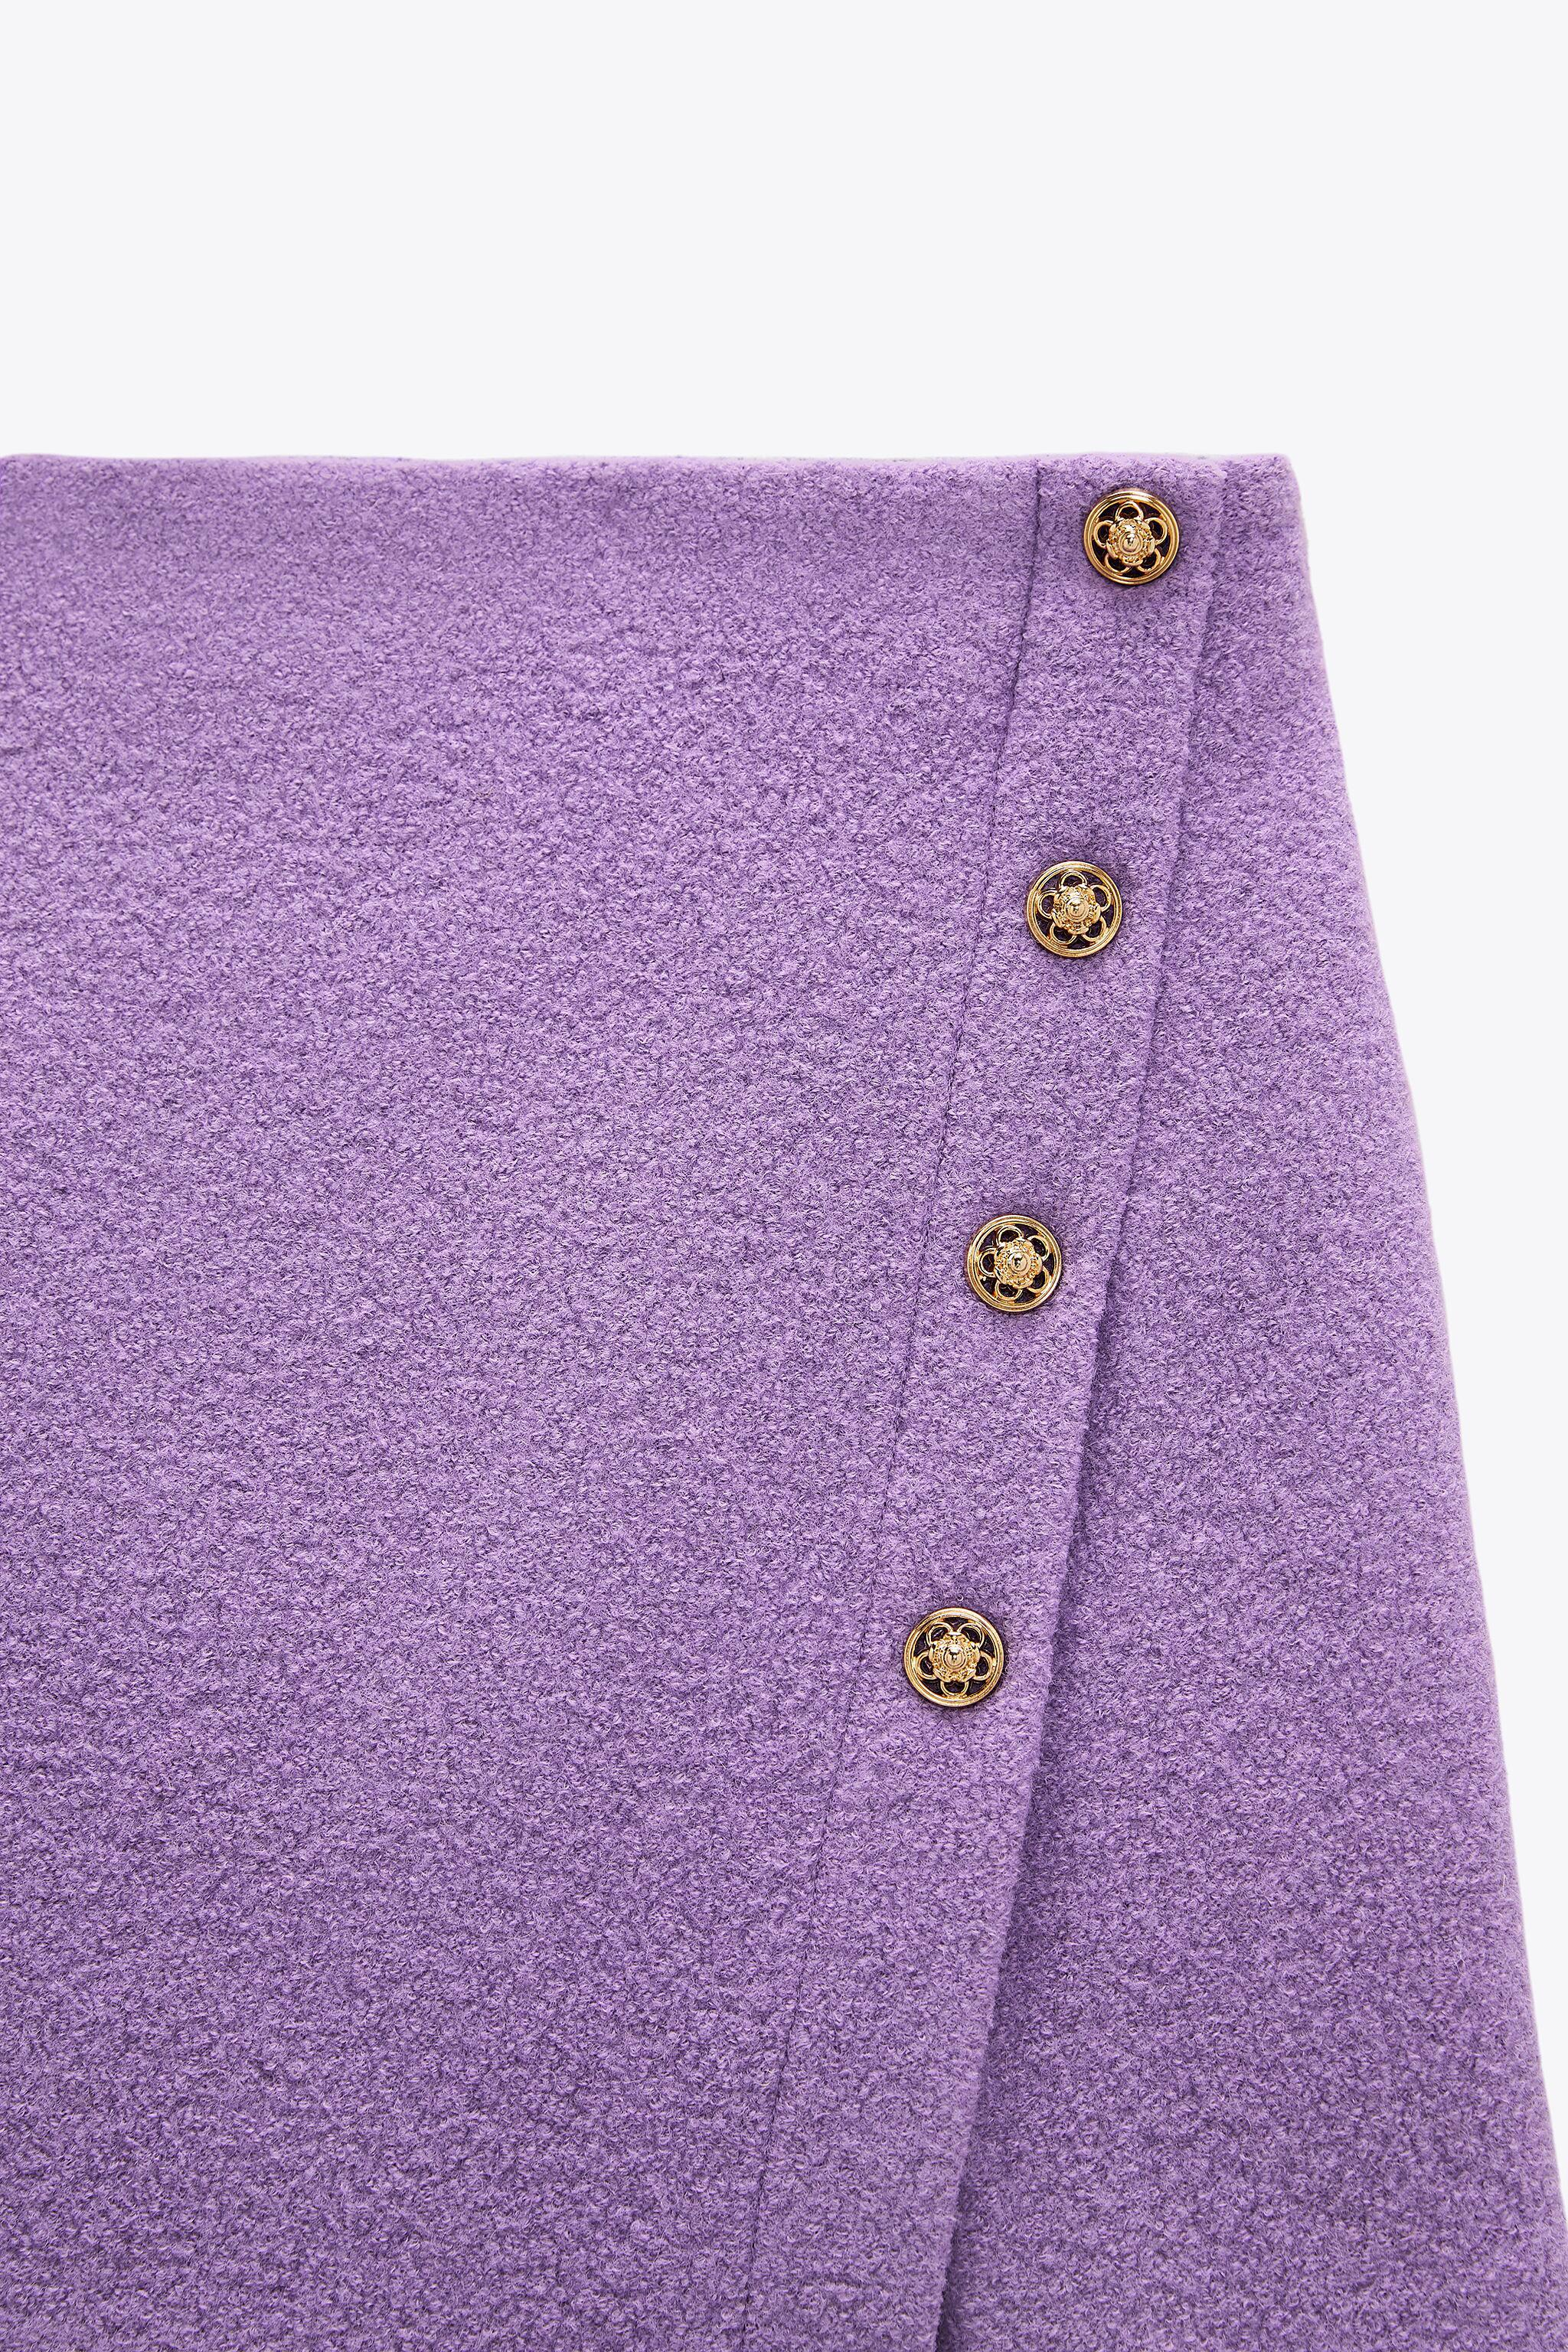 LIMITED EDITION BUTTONED SKIRT 5